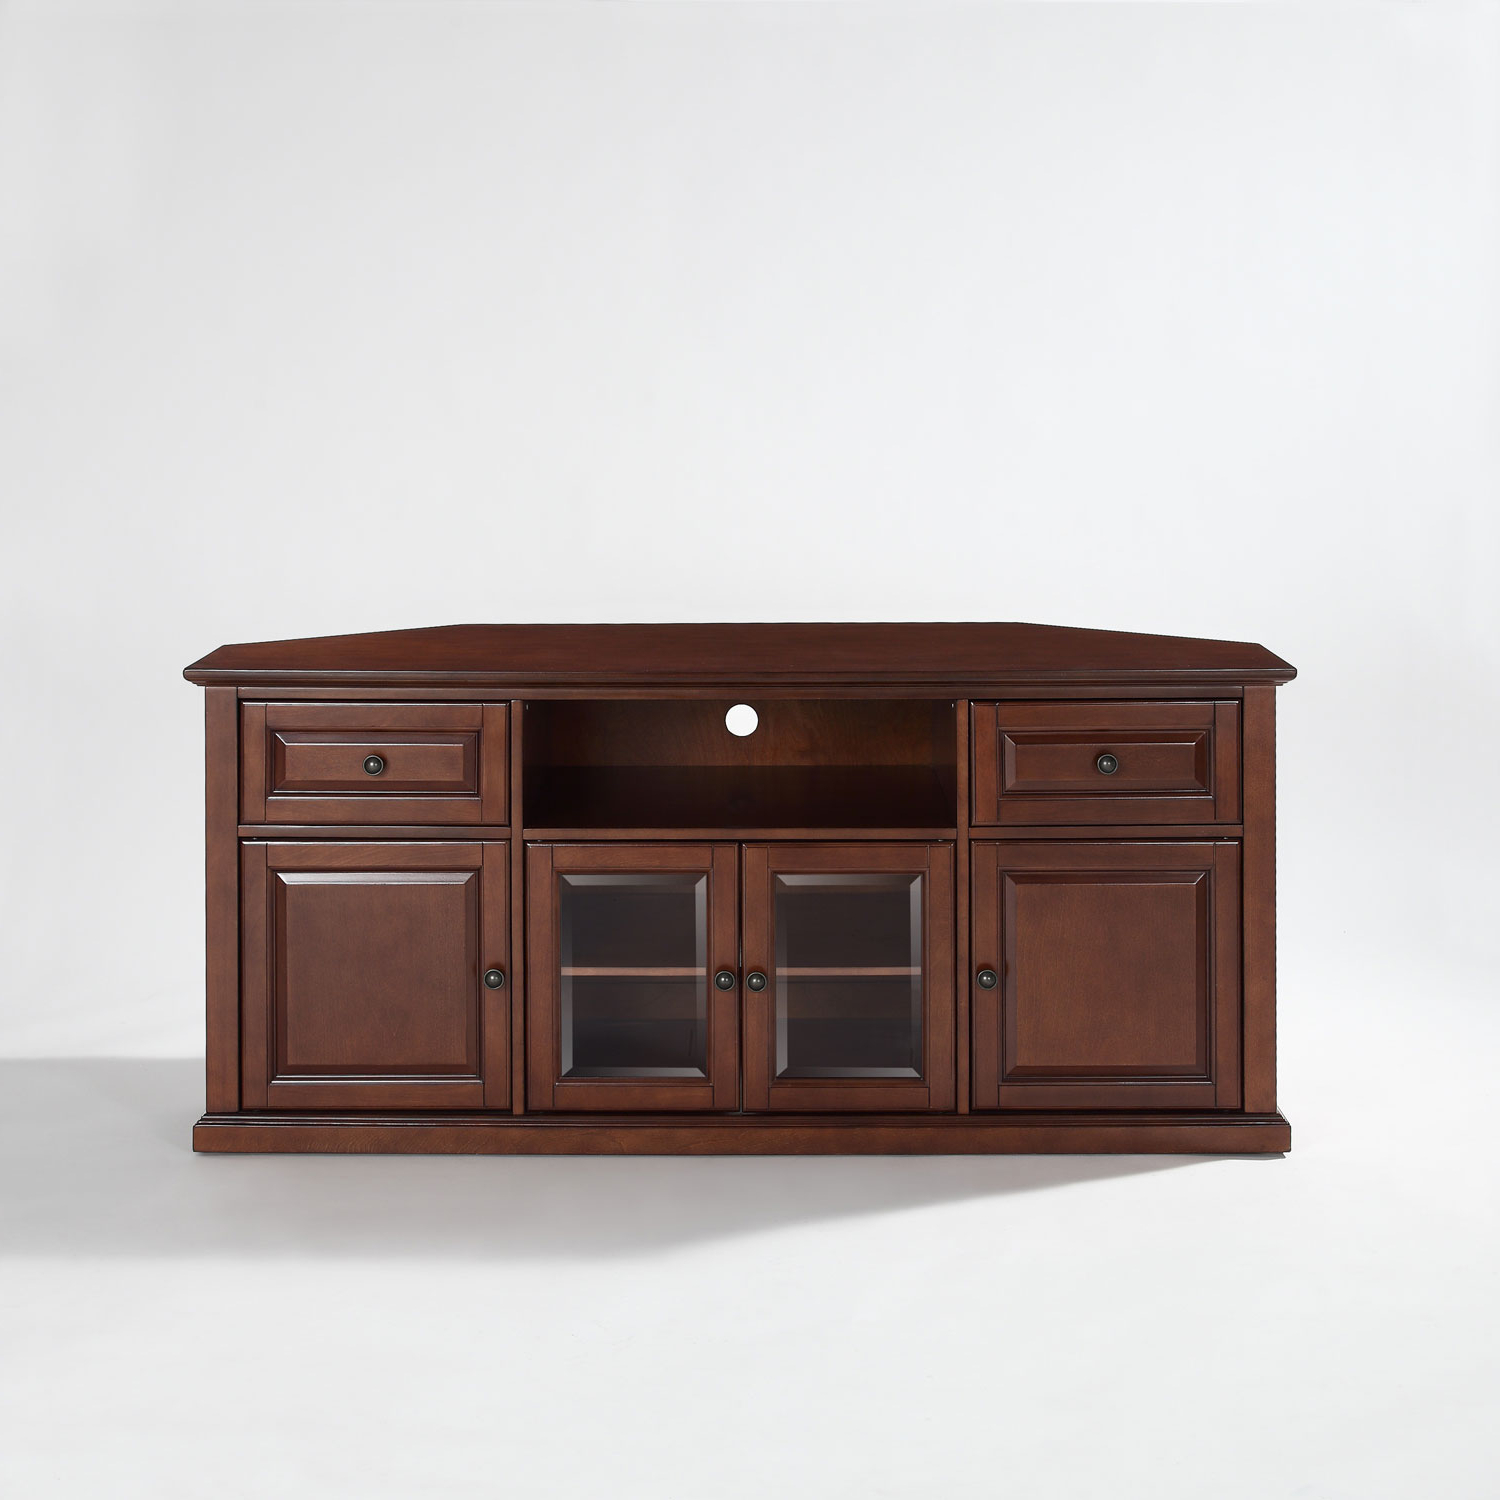 Fashionable Corner Wooden Tv Cabinets Within Crosley Furniture 60 Inch Corner Tv Stand In Vintage Mahogany (View 12 of 20)